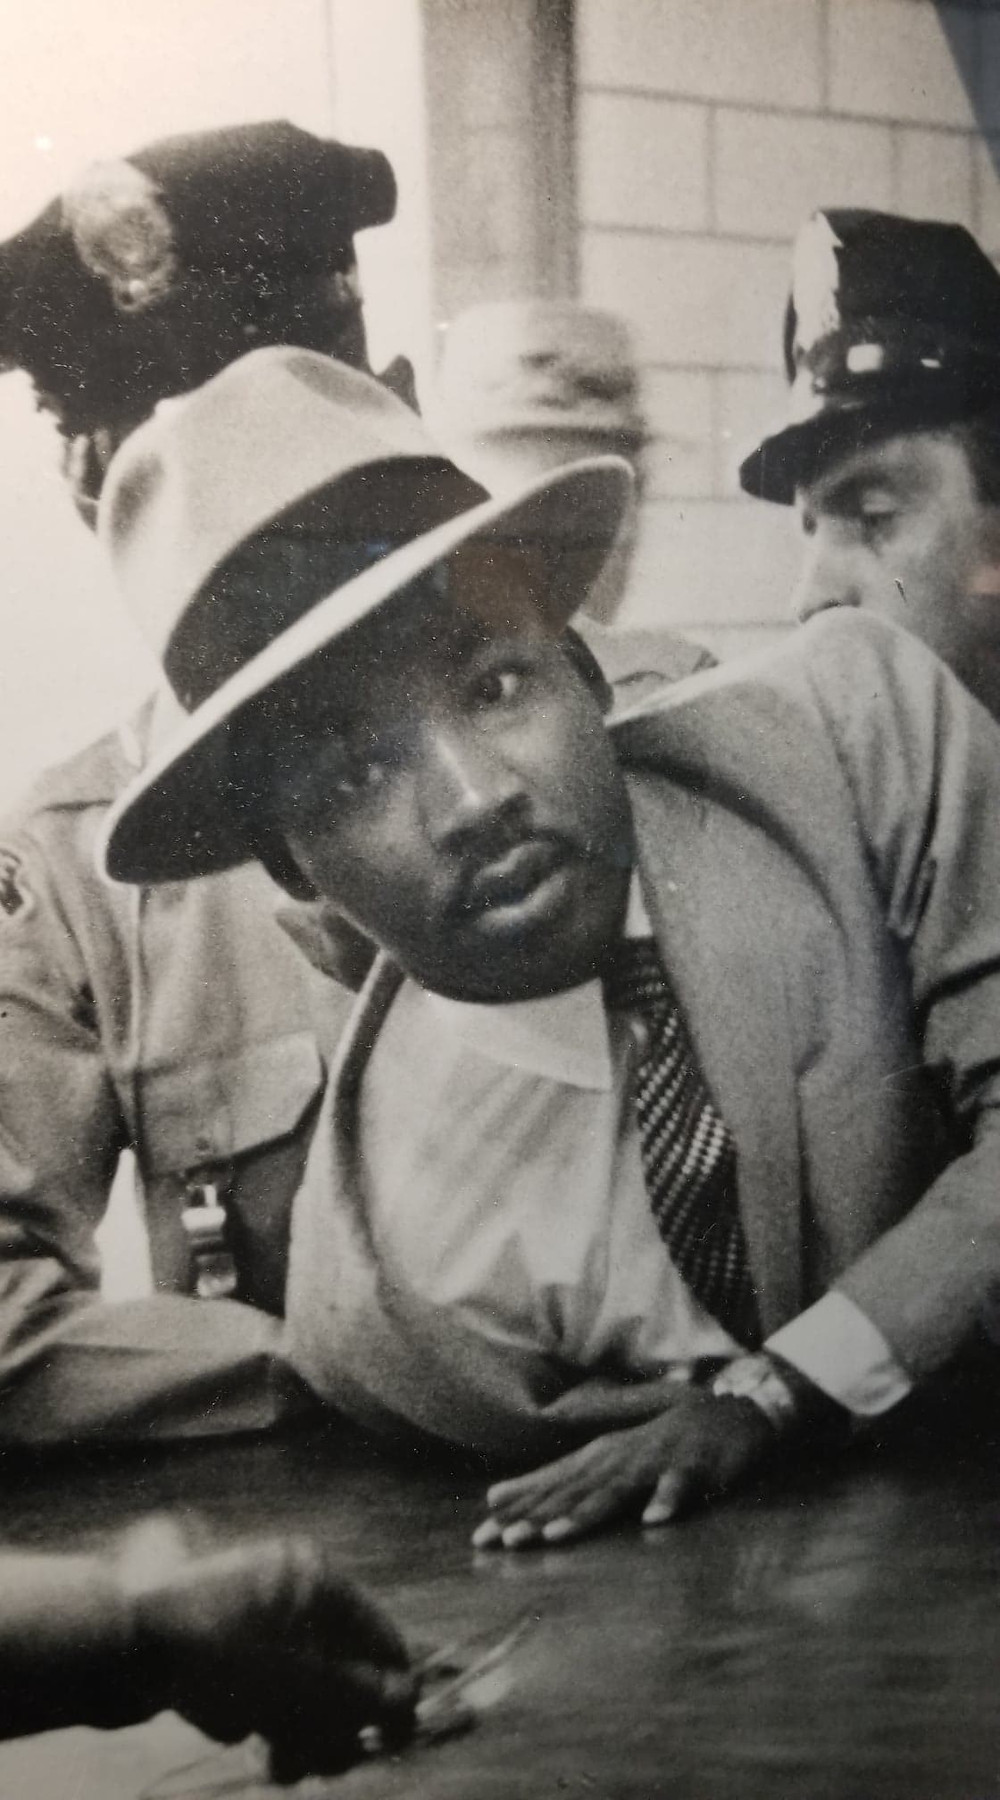 Dr. Kings being arrested